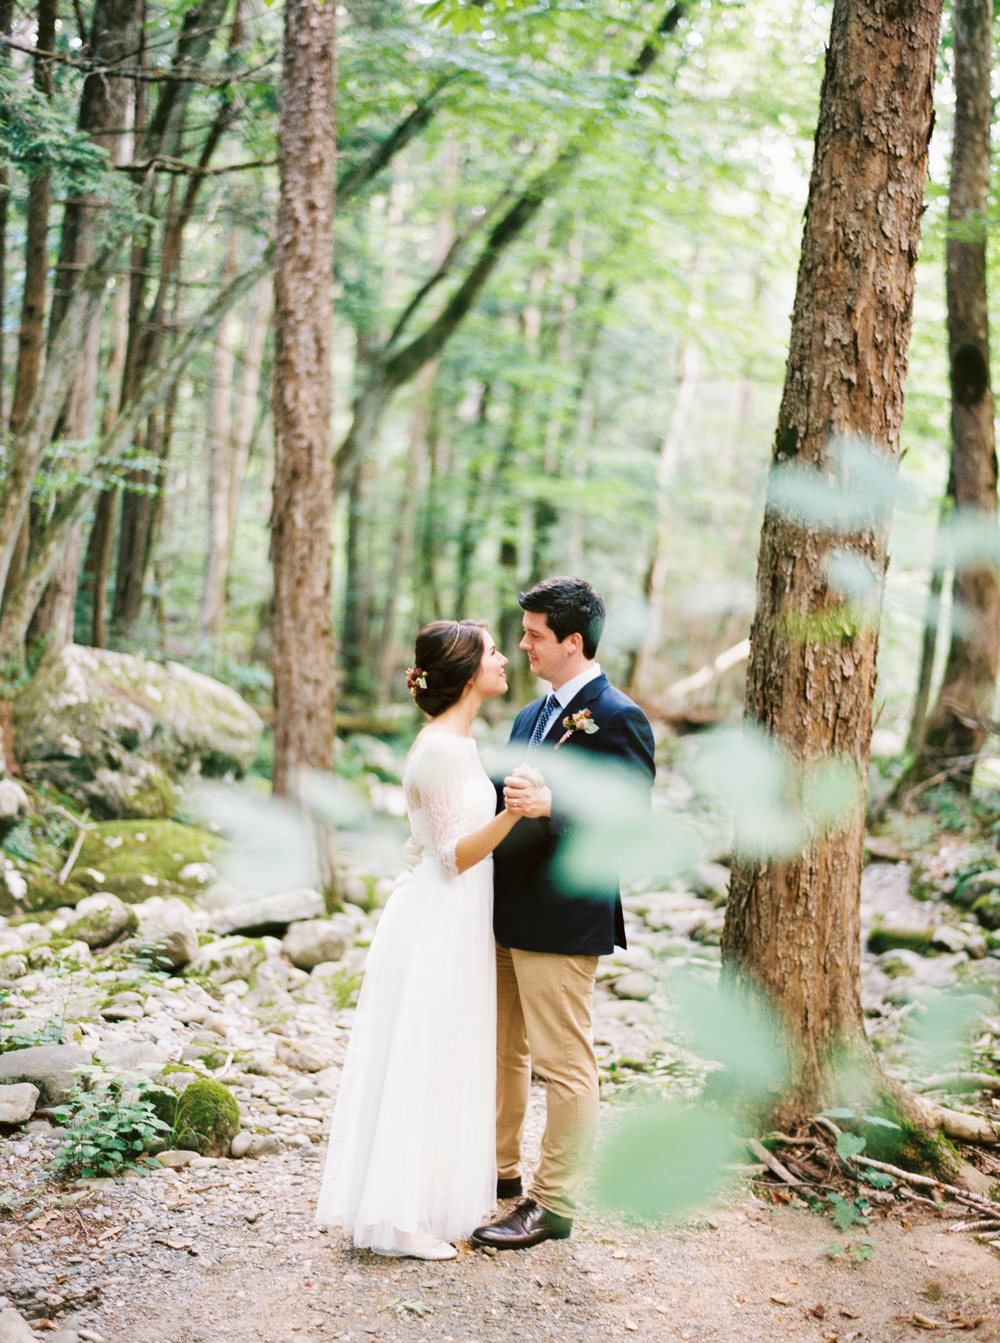 kathleen_and_joe_atkins_jo_photo_pv_takeover_contax645_fuji400h_great_smoky_mountains_national_park_nps_gatlinburg_tenessee_bhldn_weddings_lb_floral_sp3000_photovisionprints.jpg